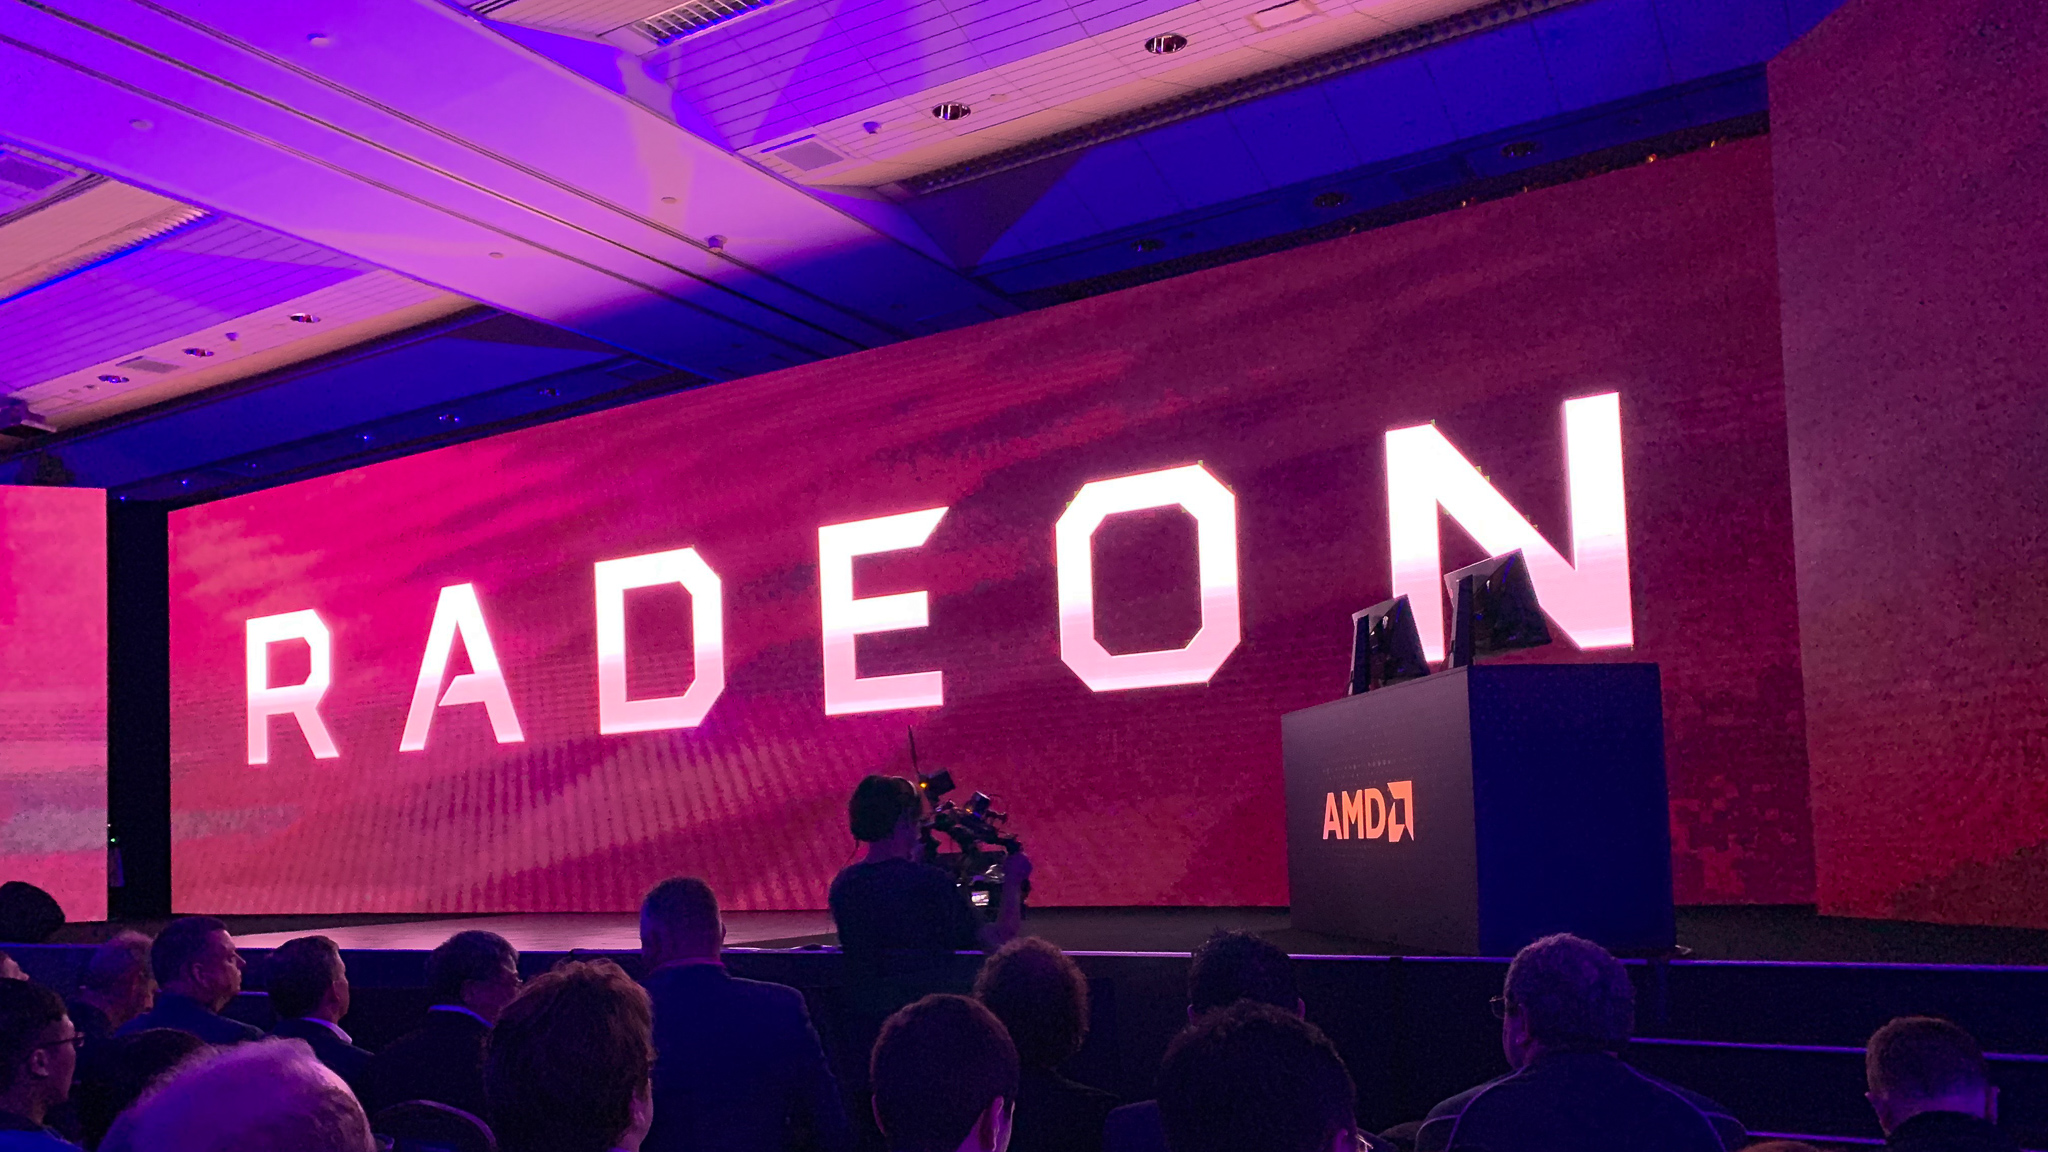 Best Gaming Graphics Card 2020 AMD Navi 23 could be an 'Nvidia killer' graphics card that